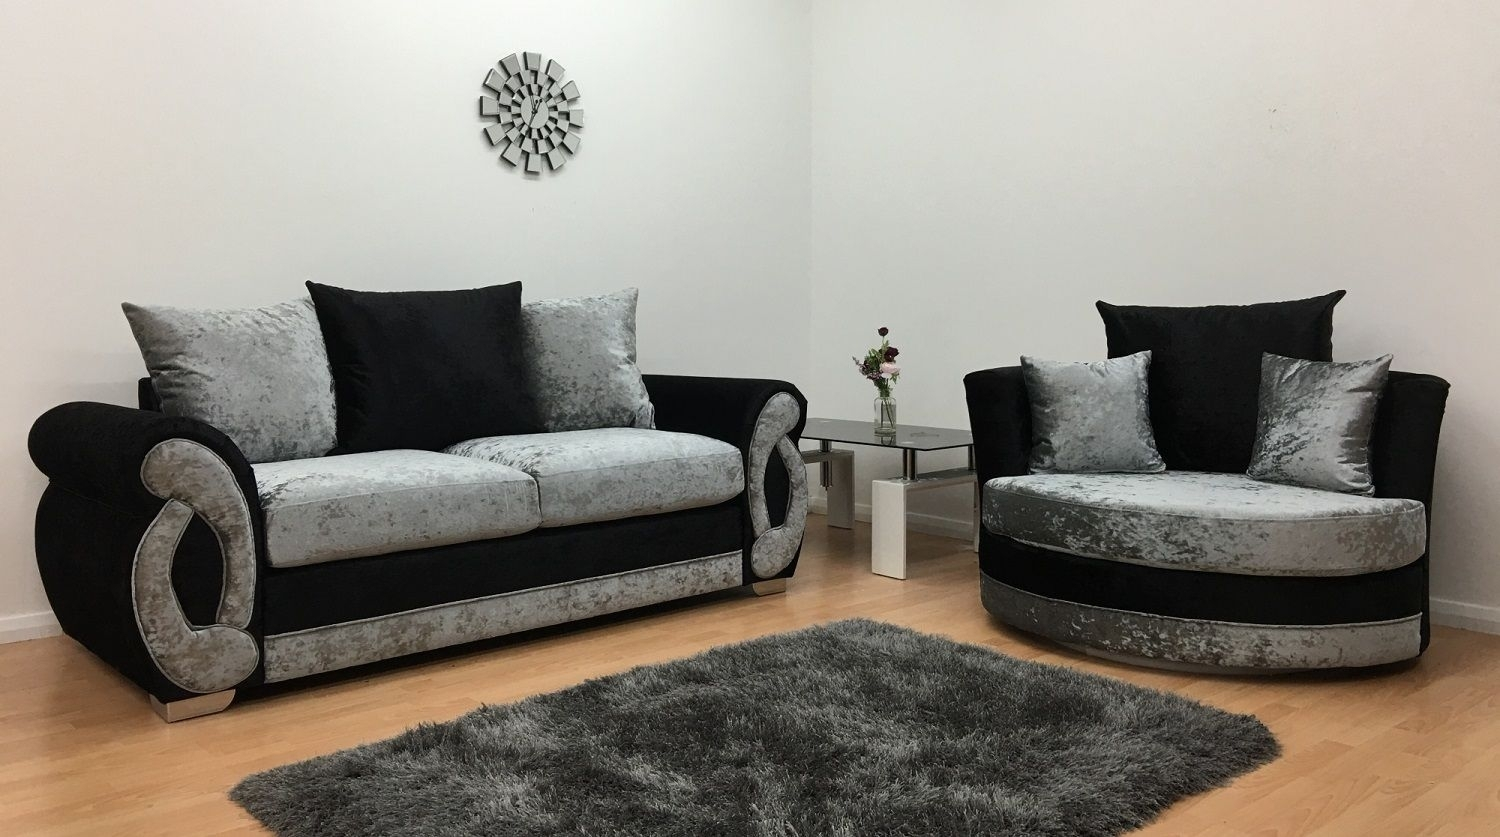 Furnish365 | Chloe 3 Seater And Cuddle Chair – Black & Silver Pertaining To 3 Seater Sofas And Cuddle Chairs (View 7 of 10)